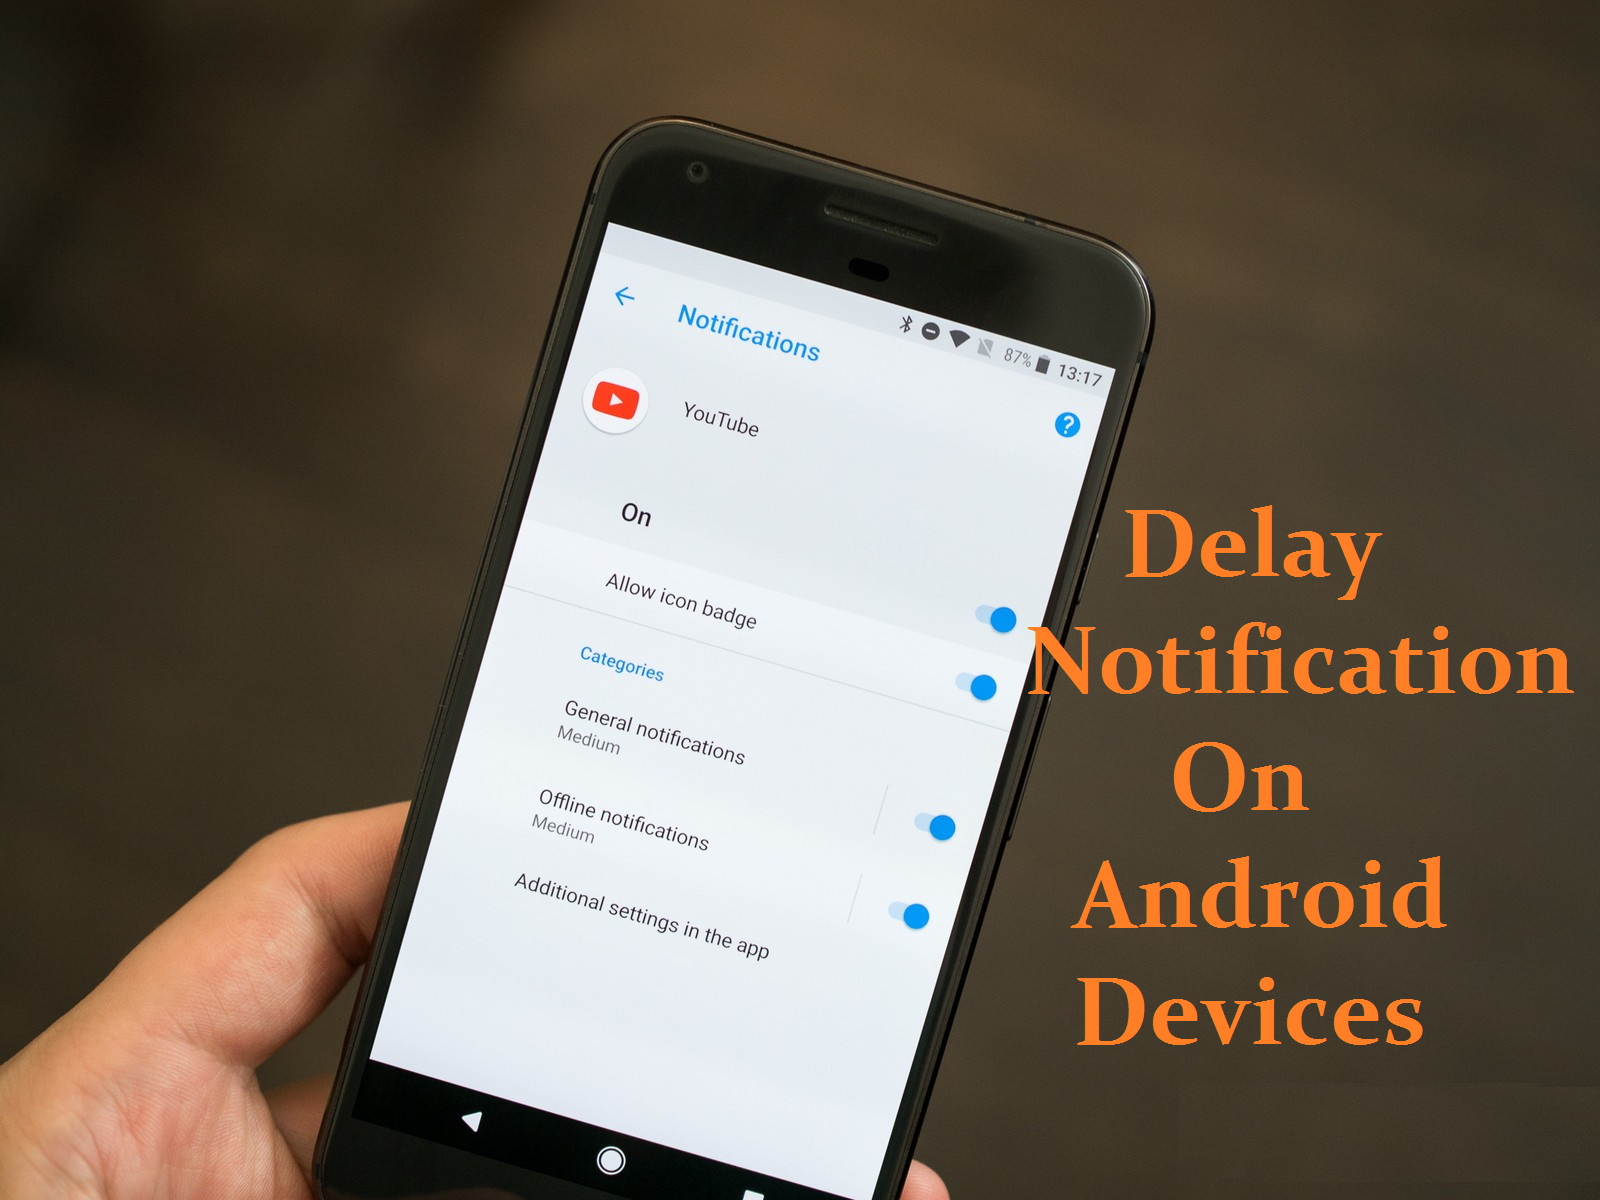 Fix The Delay Notification On Android Devices